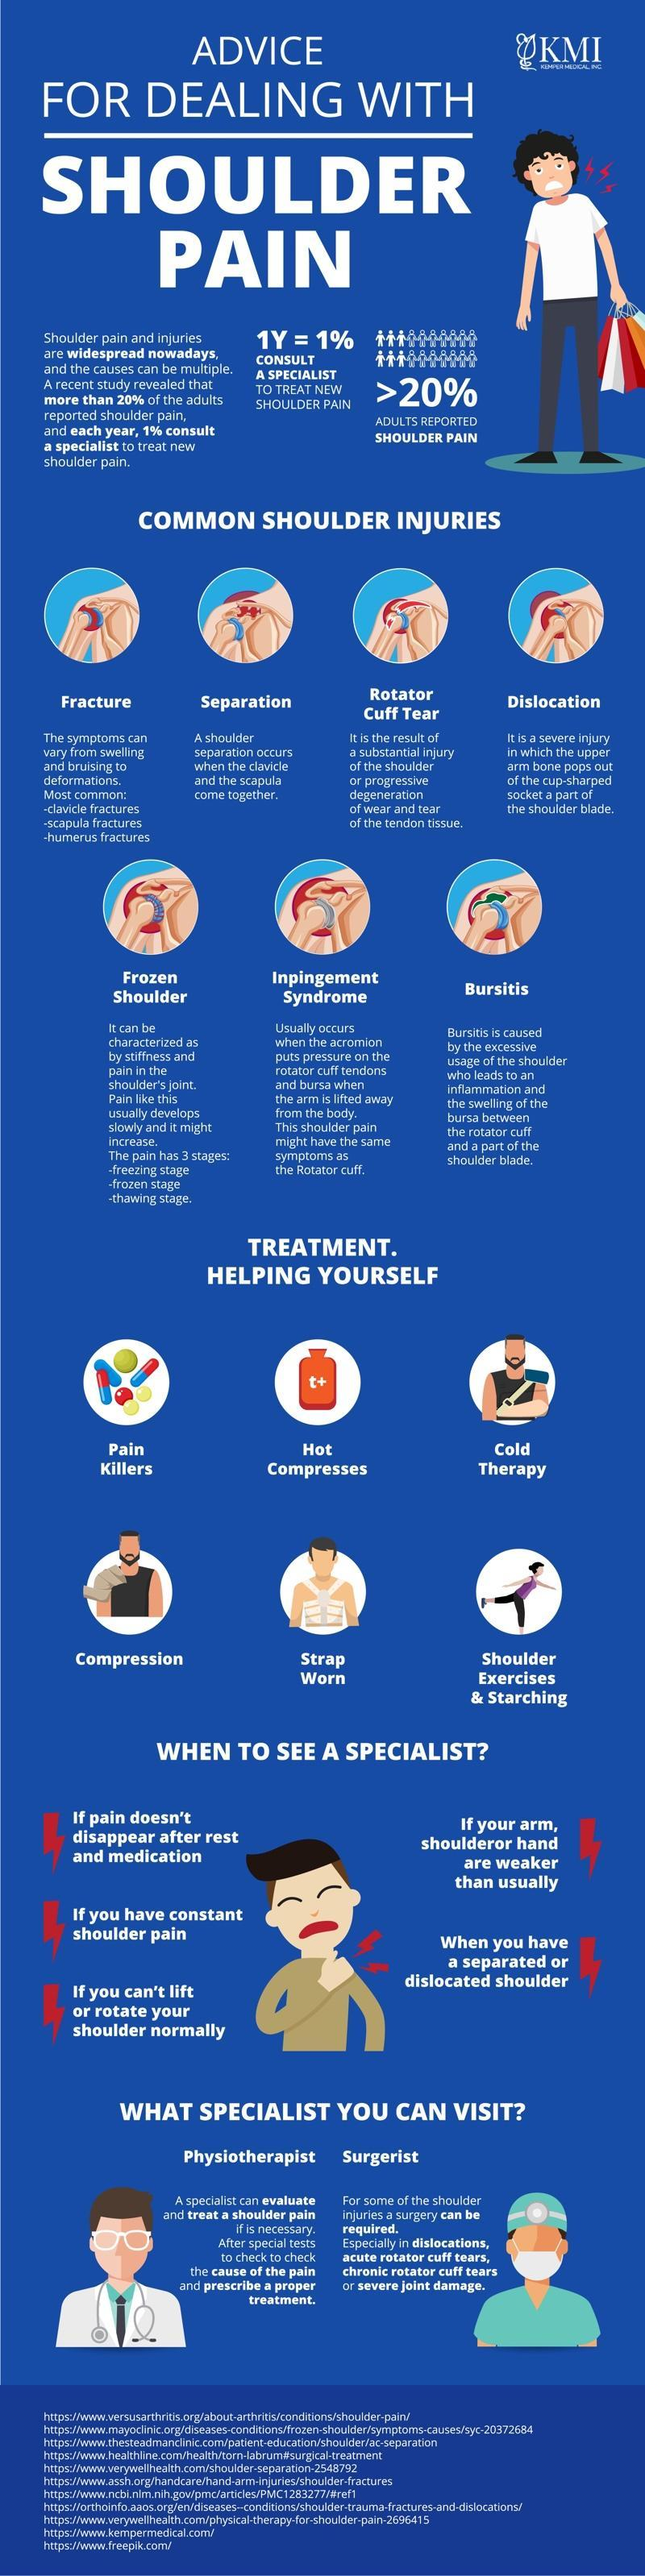 Shoulder Pain - Home Remedies [Infographic]